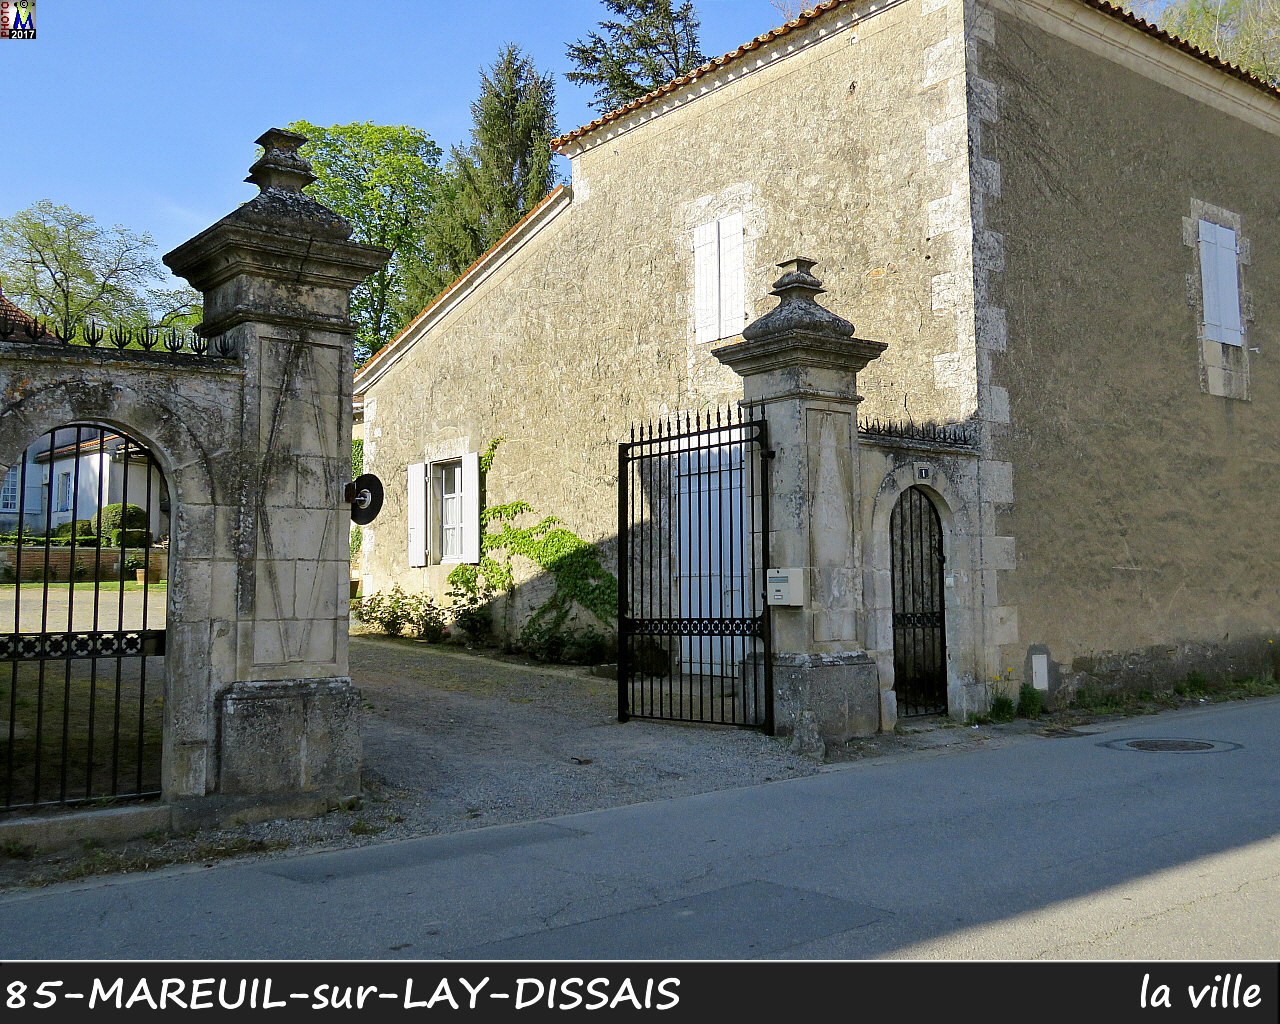 85MAREUIL-LAY_ville_1040.jpg